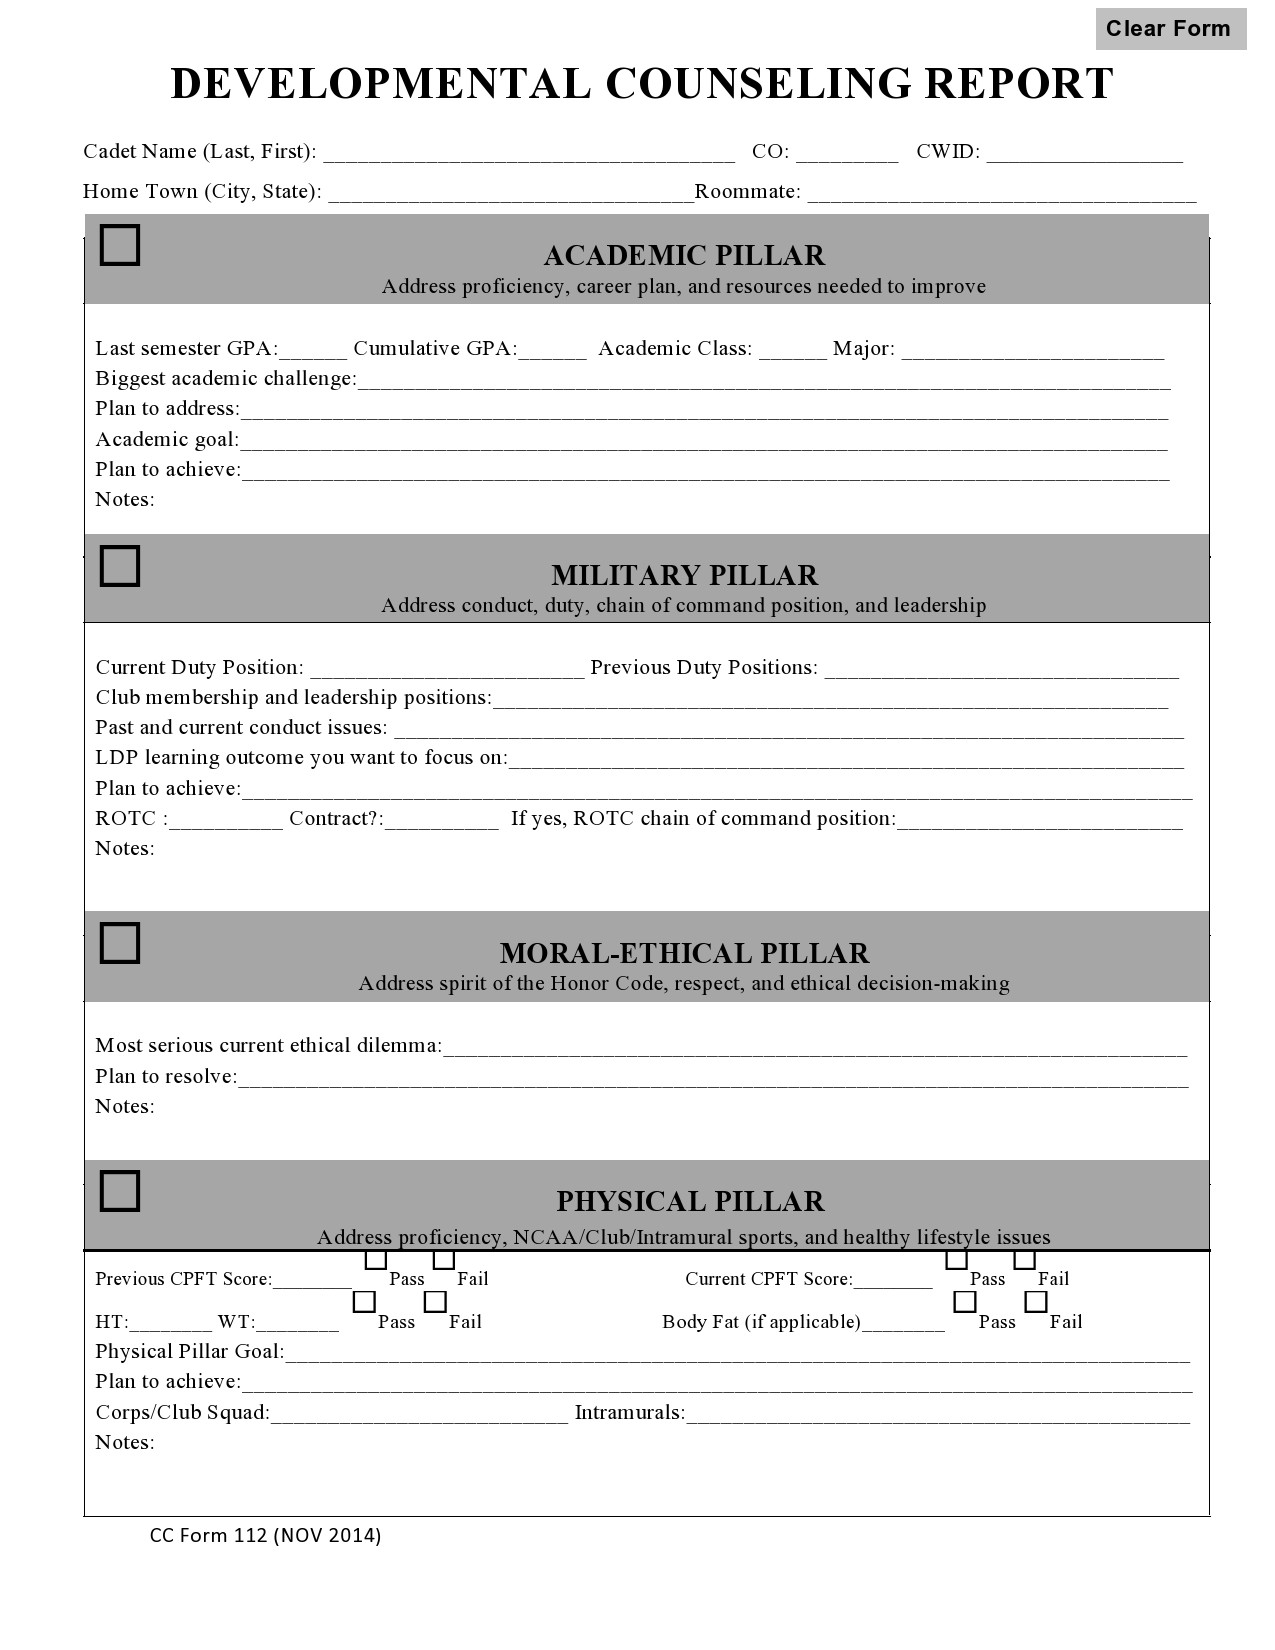 Free army counseling form 23